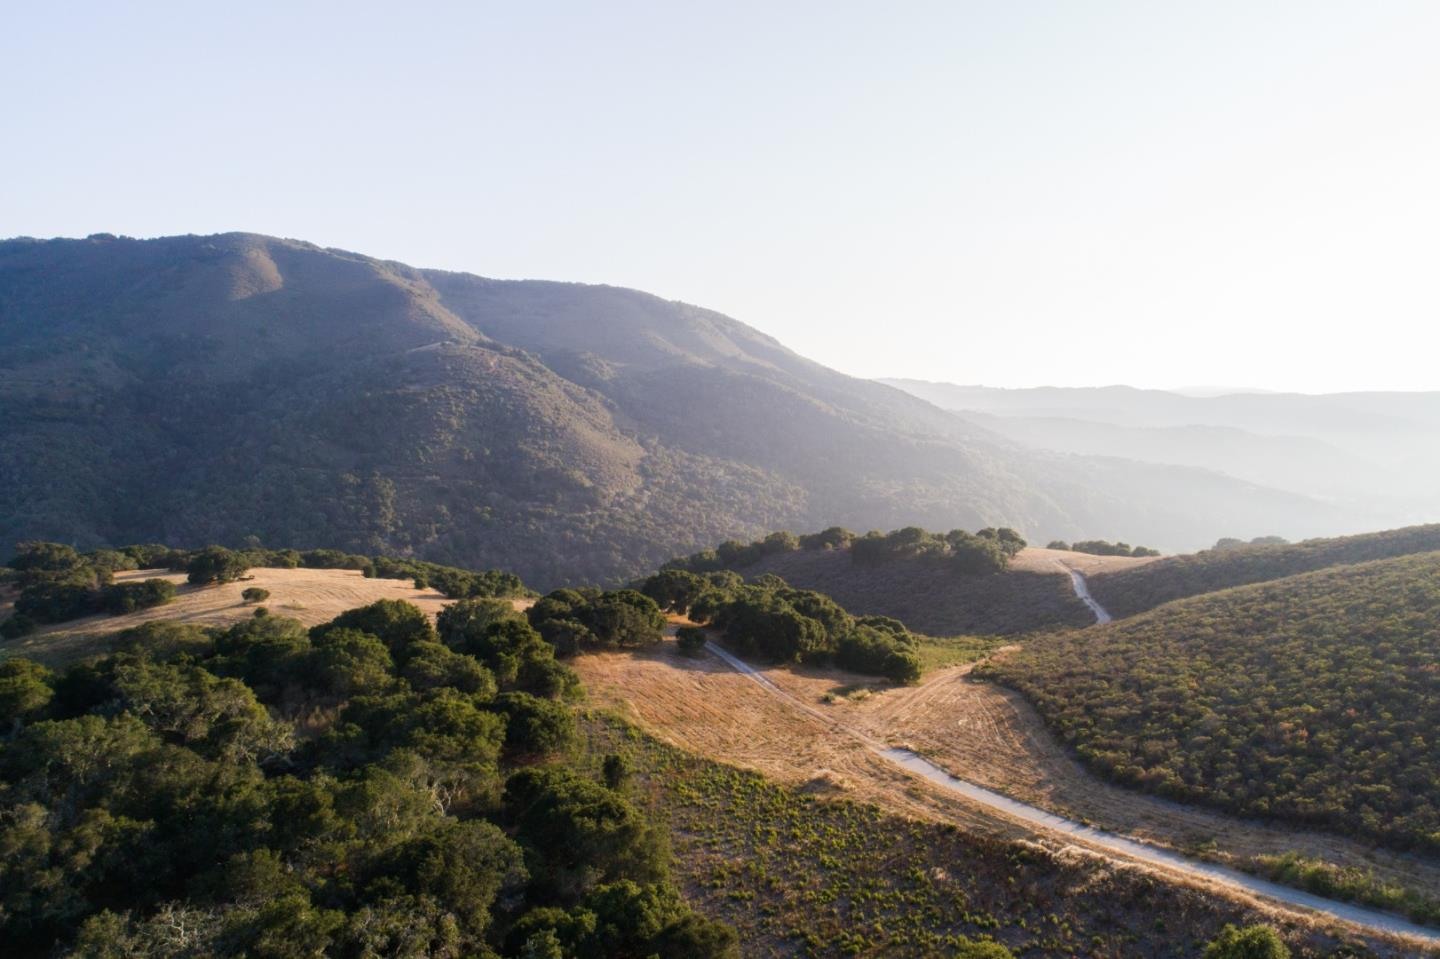 Property for sale at 27685 Via Quintana, Carmel Valley,  CA 93924